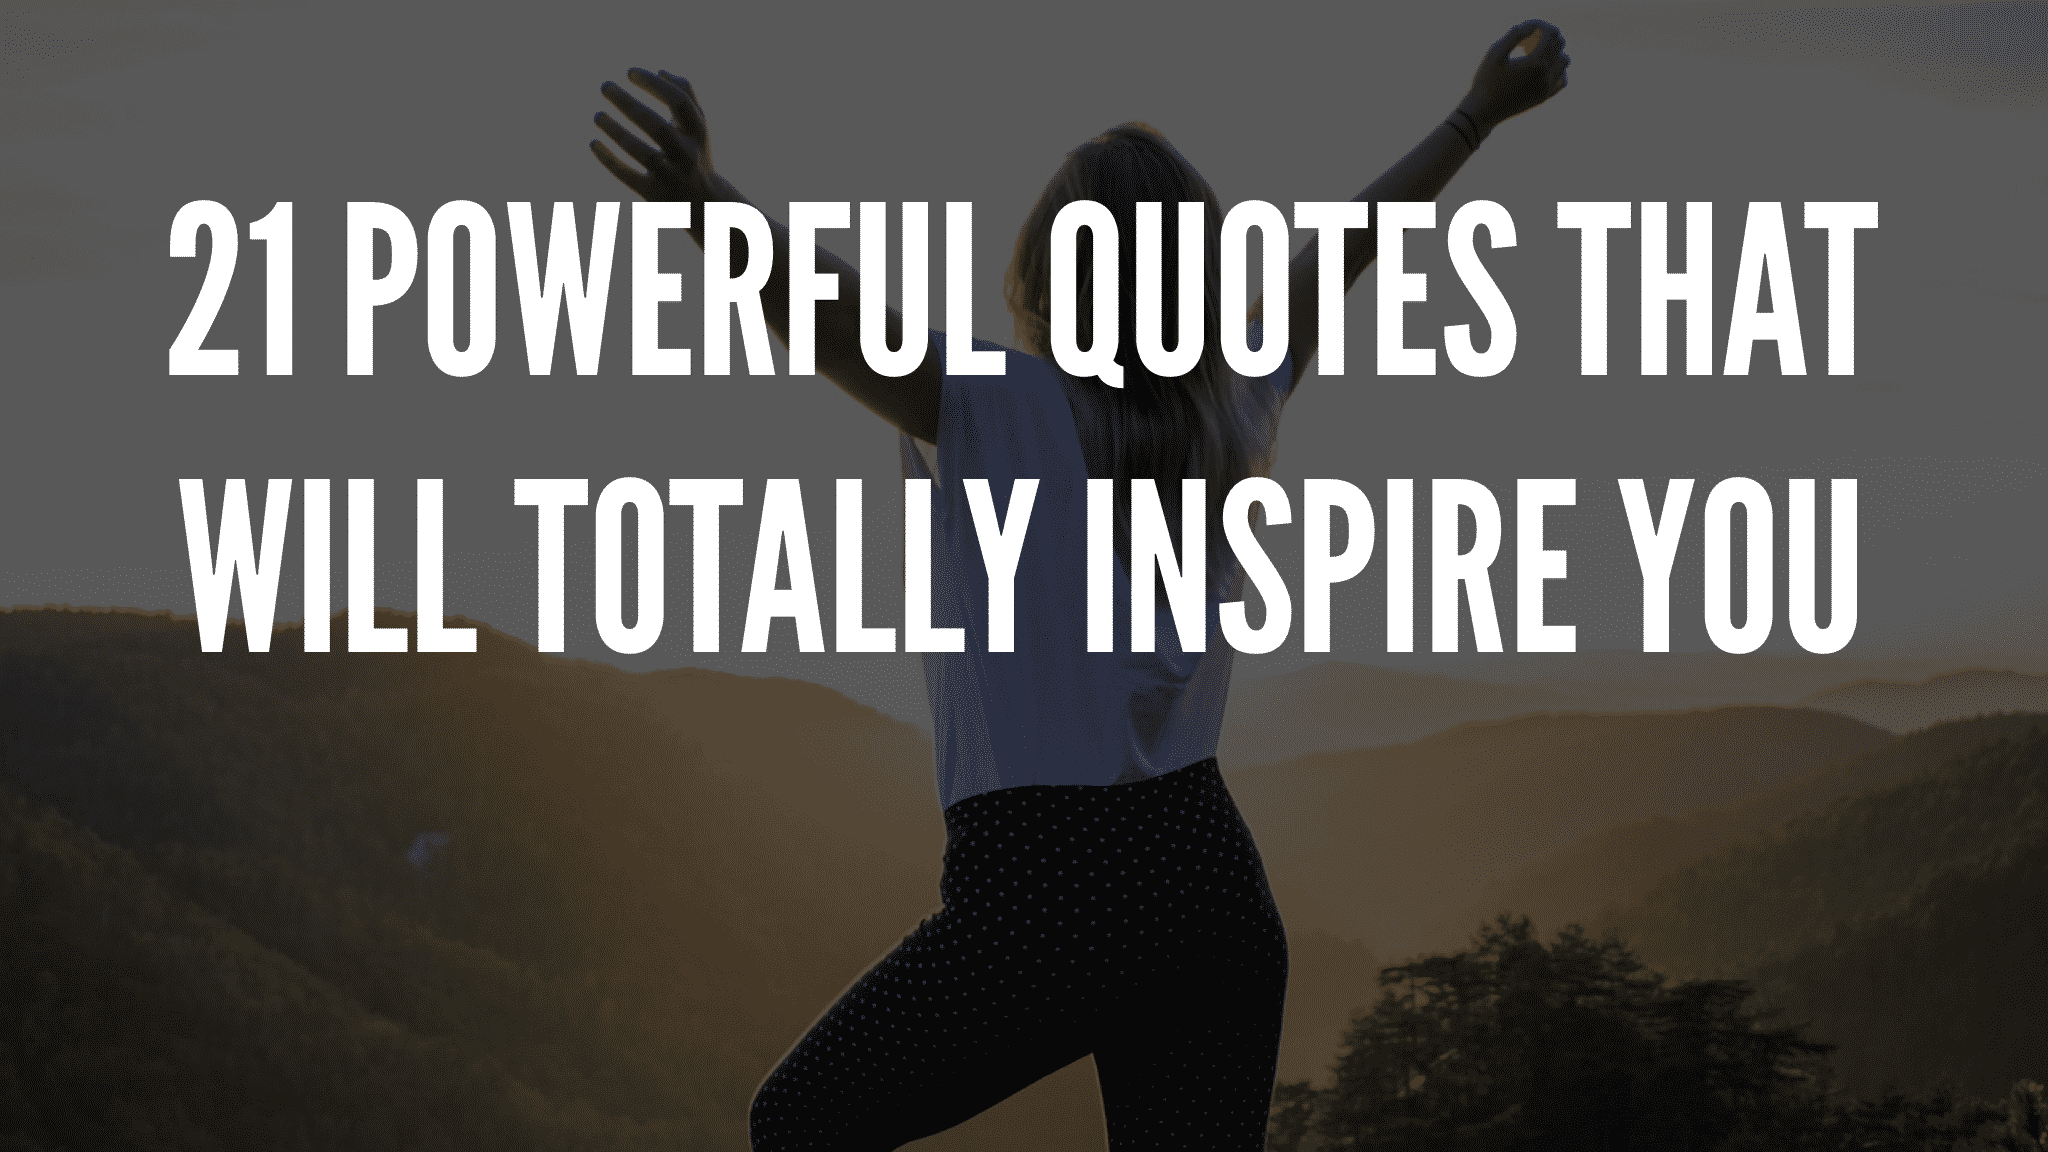 Quotes That Will Totally Inspire You